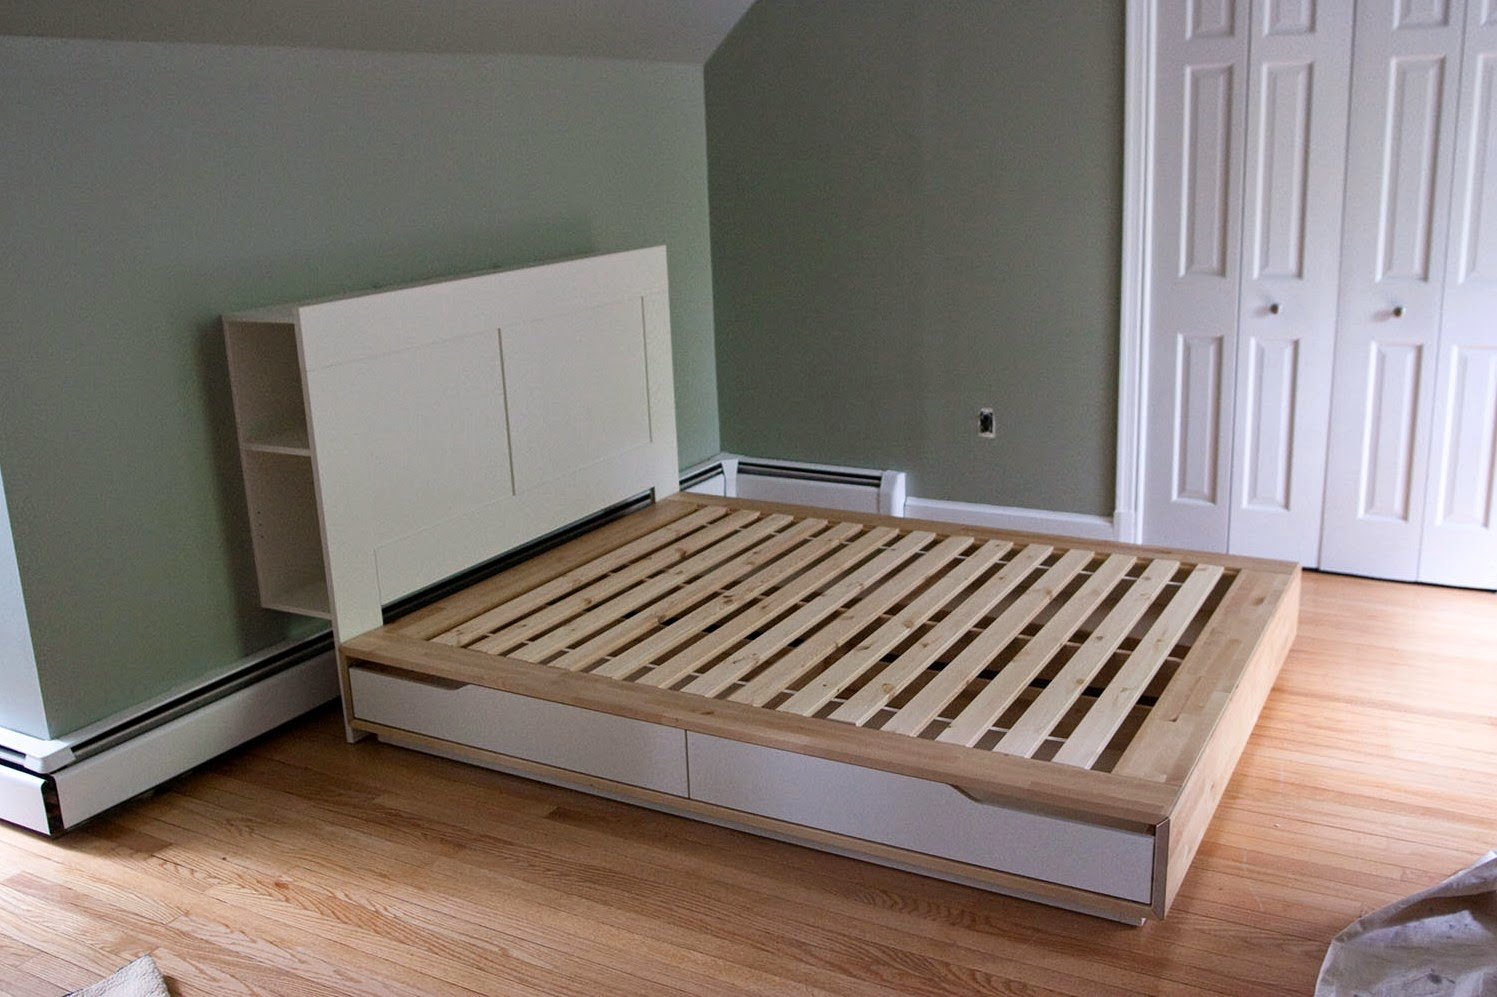 Image of: Bed With Headboard Storage Frames